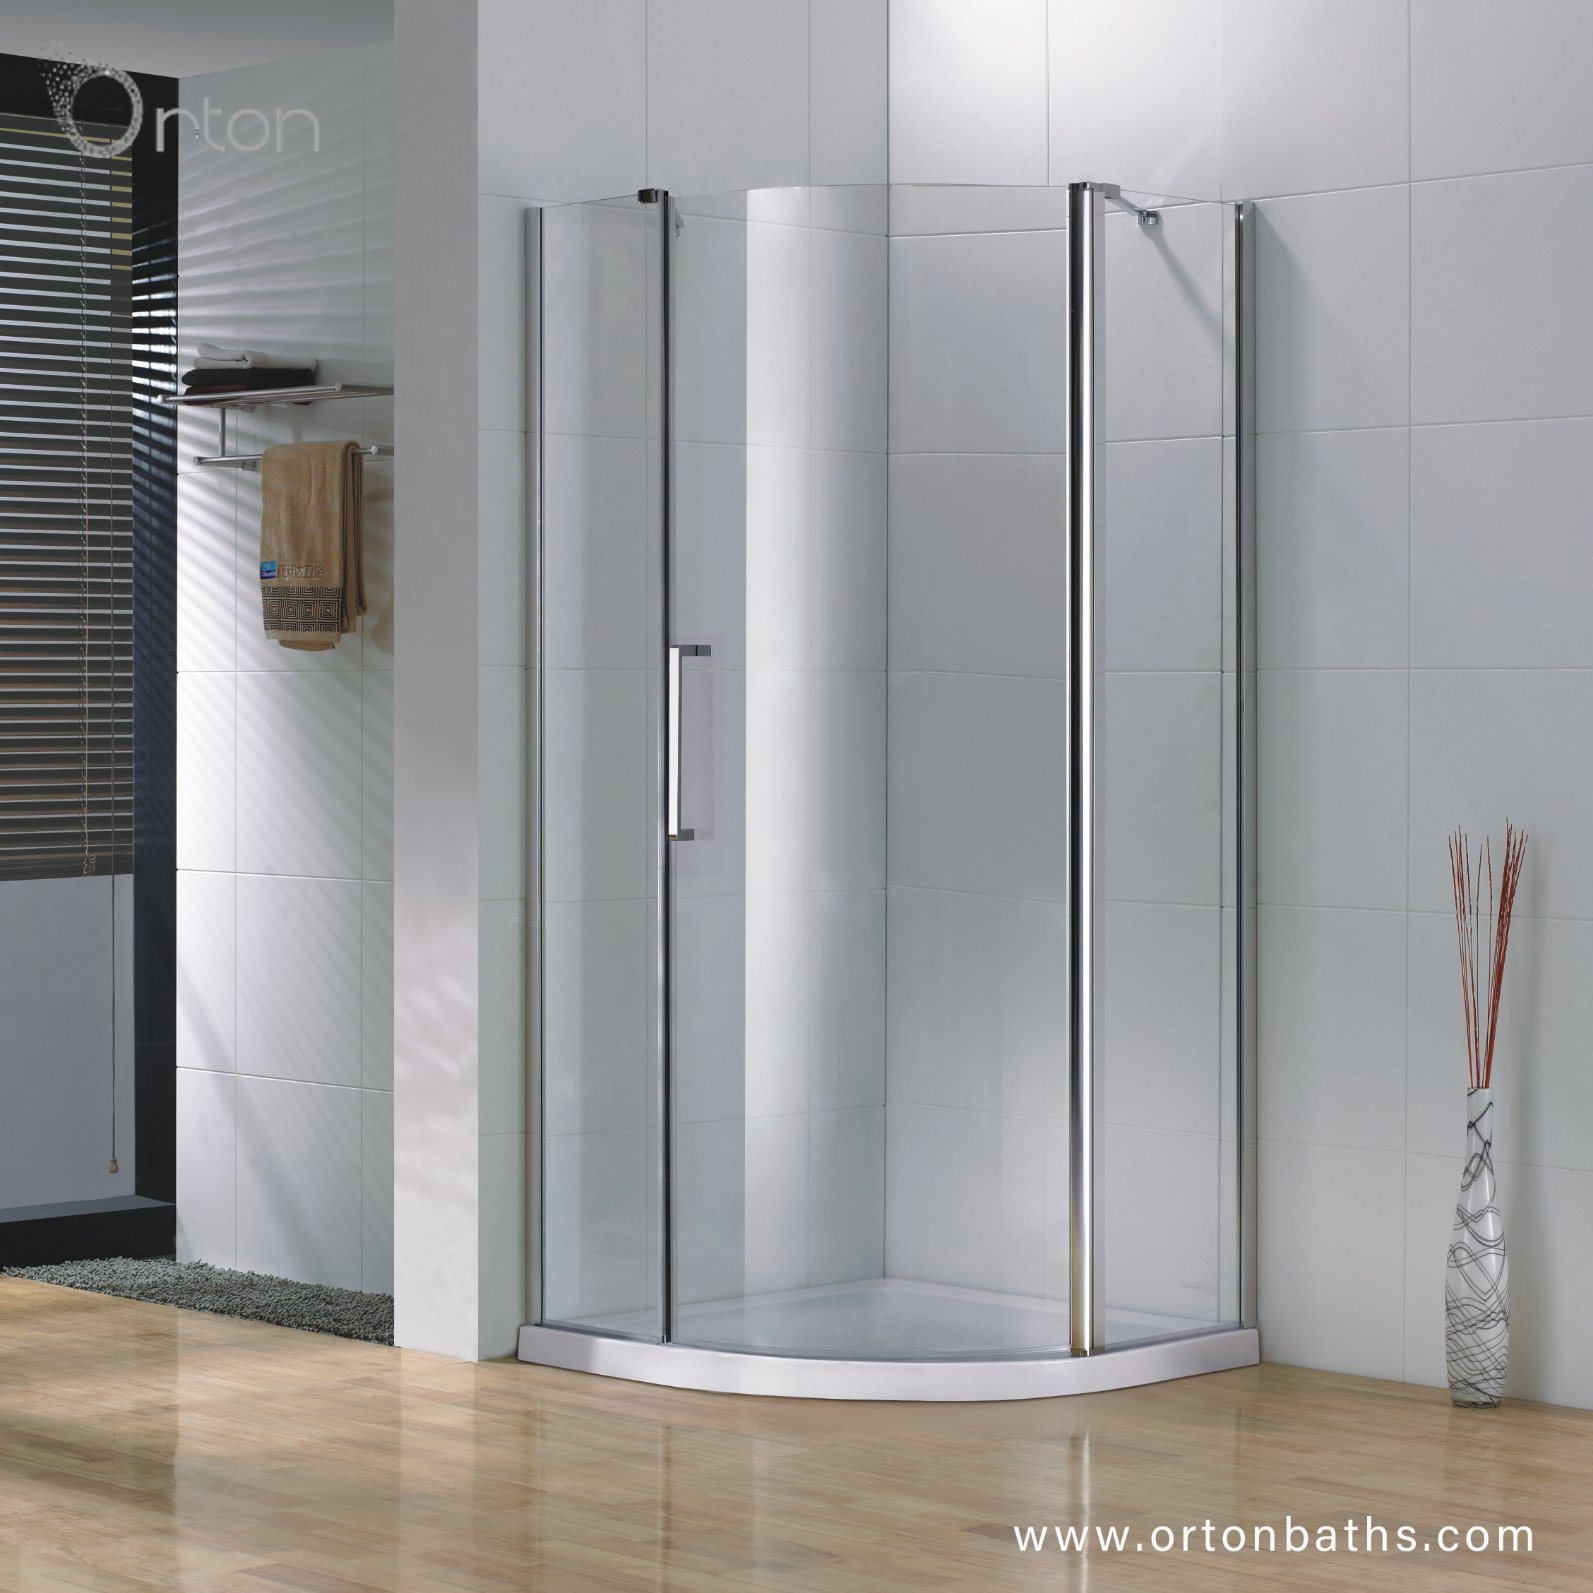 China Professional Safety Tempered Glass Curved Shower Room